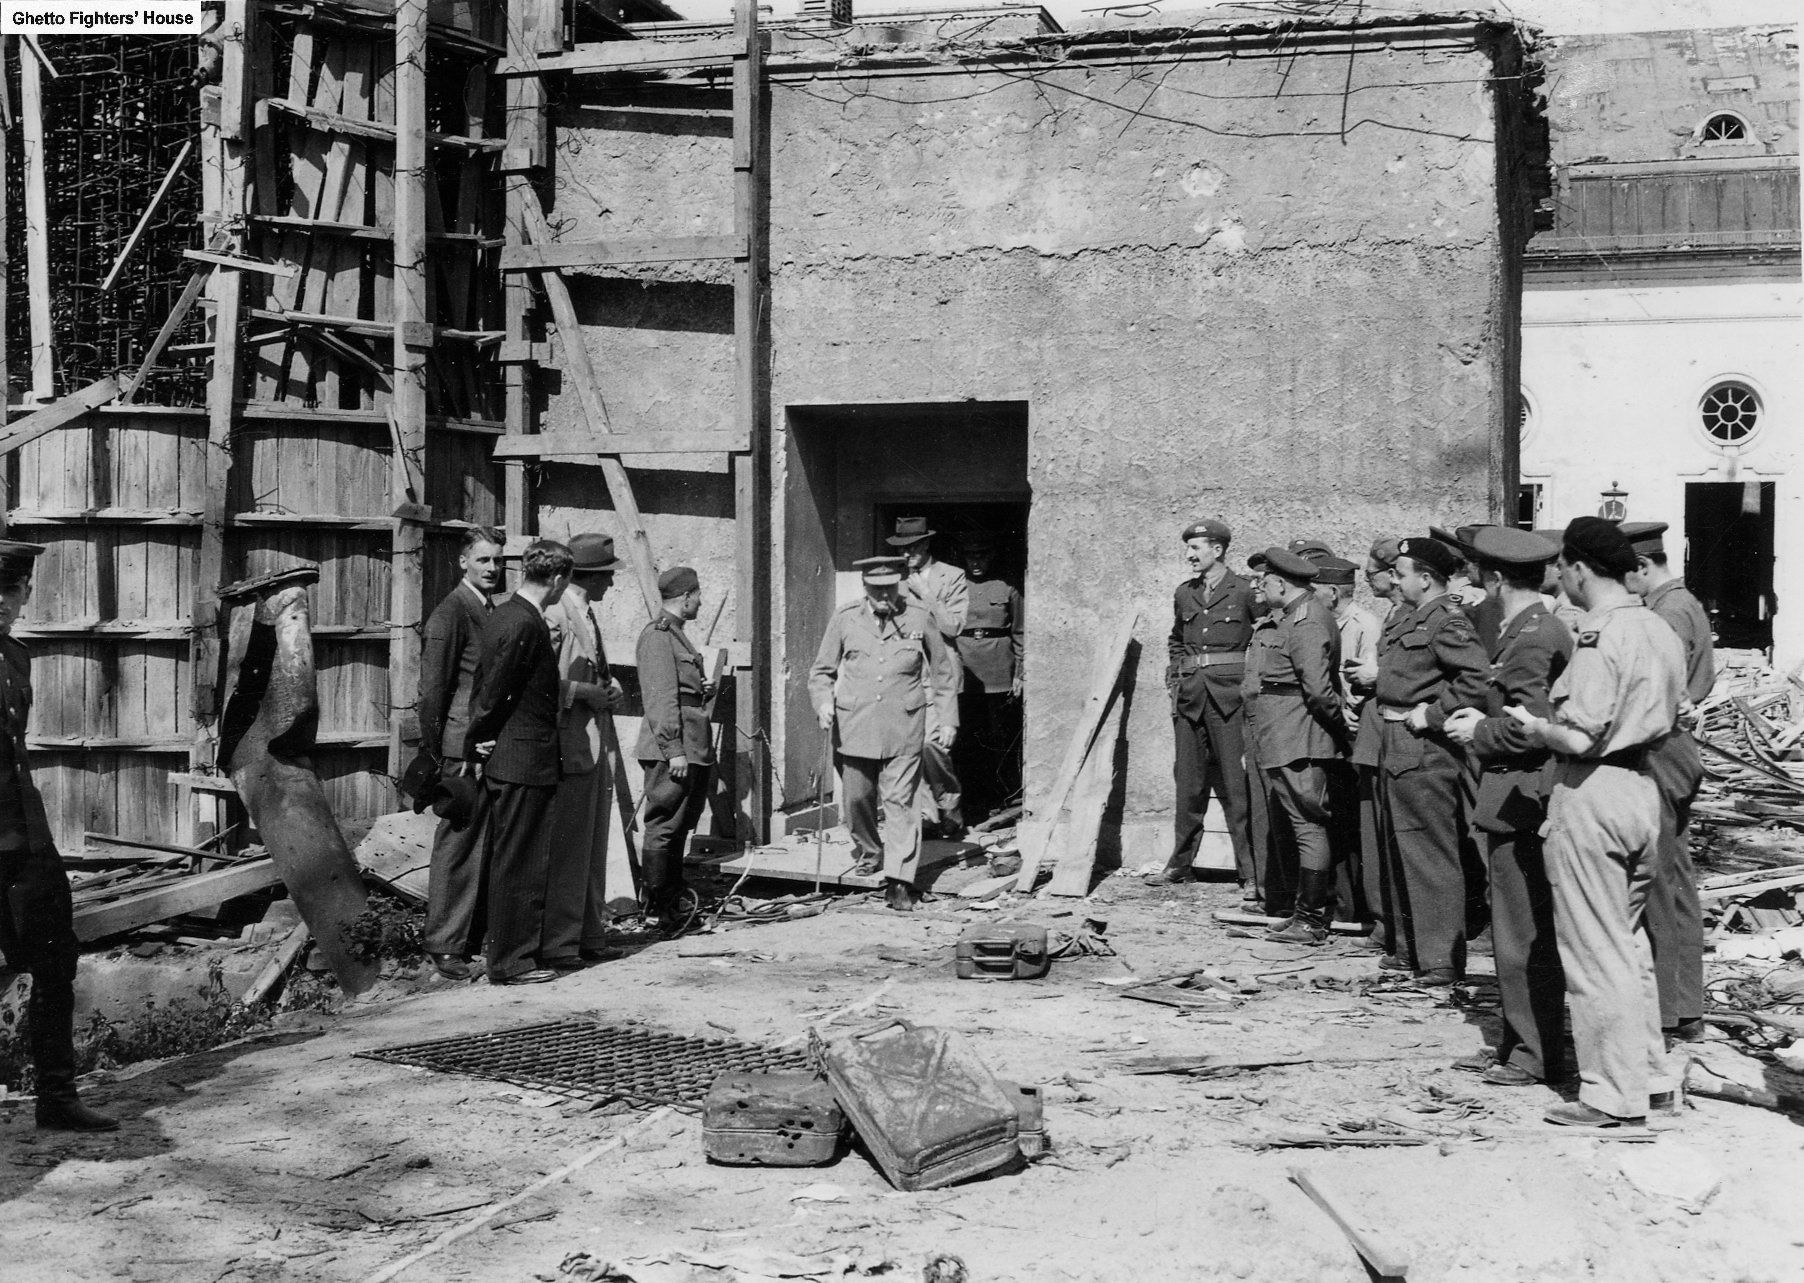 Winston Churchill exits the Führerbunker during a visit in July 1945.